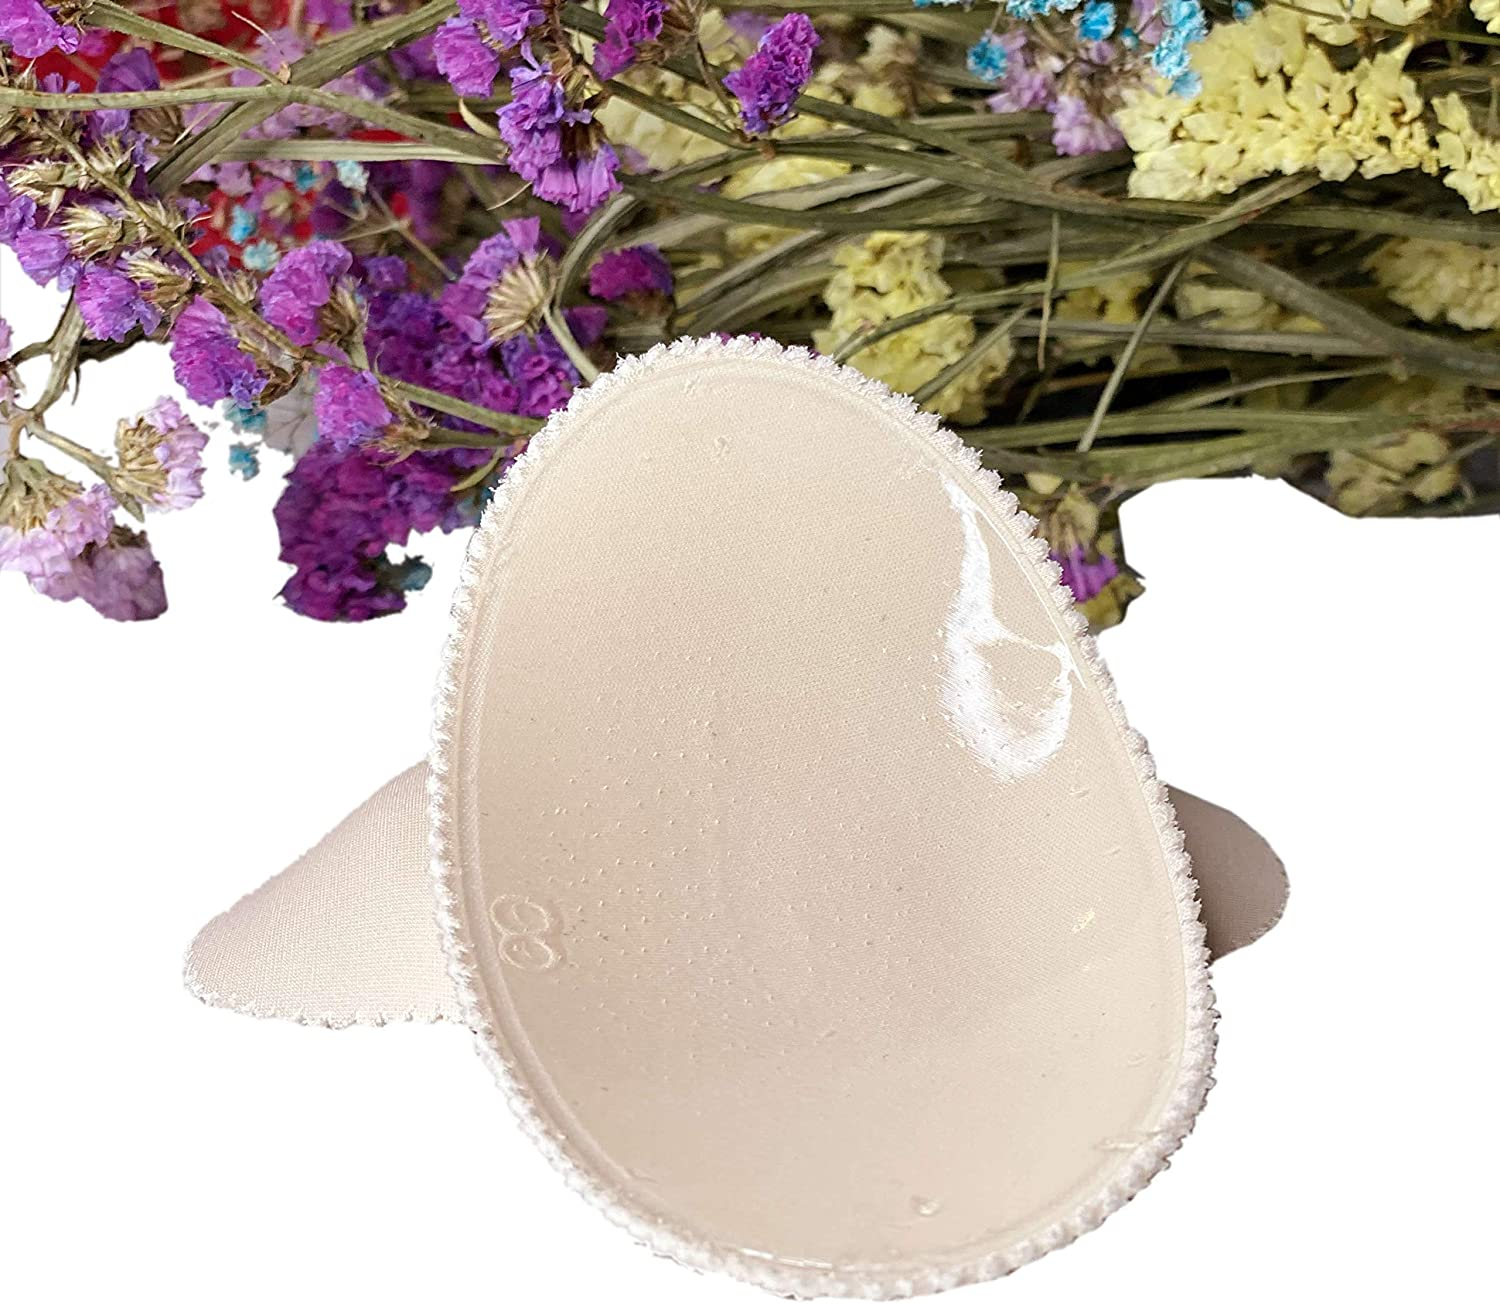 Narrow shoulders700 BIMEI Self-Adhesive Reusable Silicone Shoulder pad Suitable for Slippery Shoulders